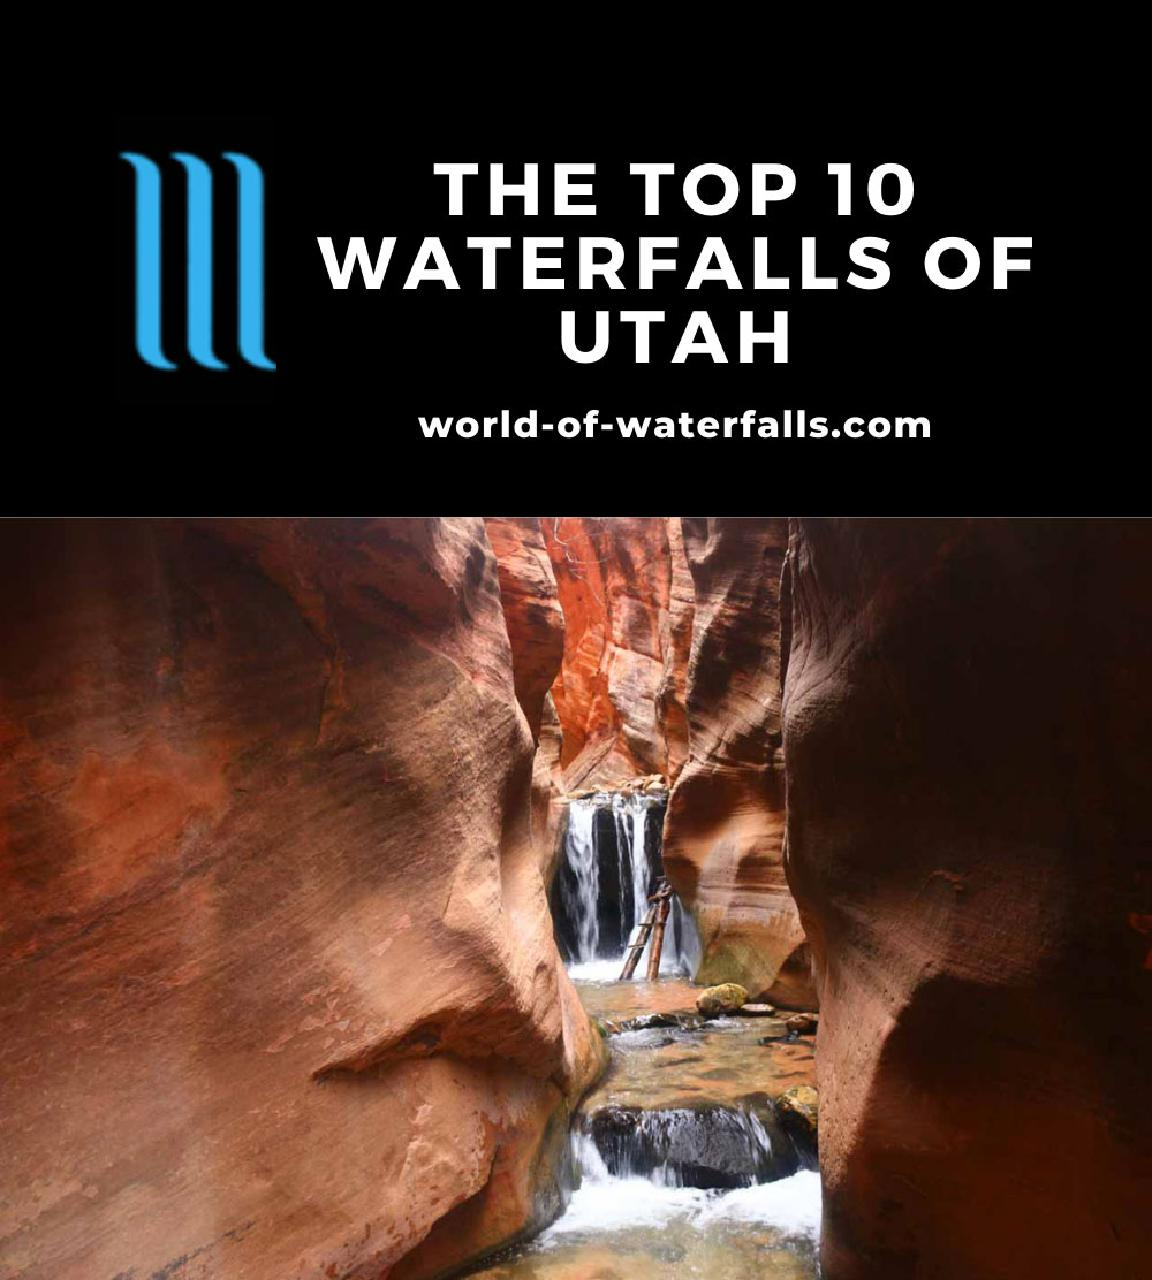 The Top 10 Waterfalls of Utah